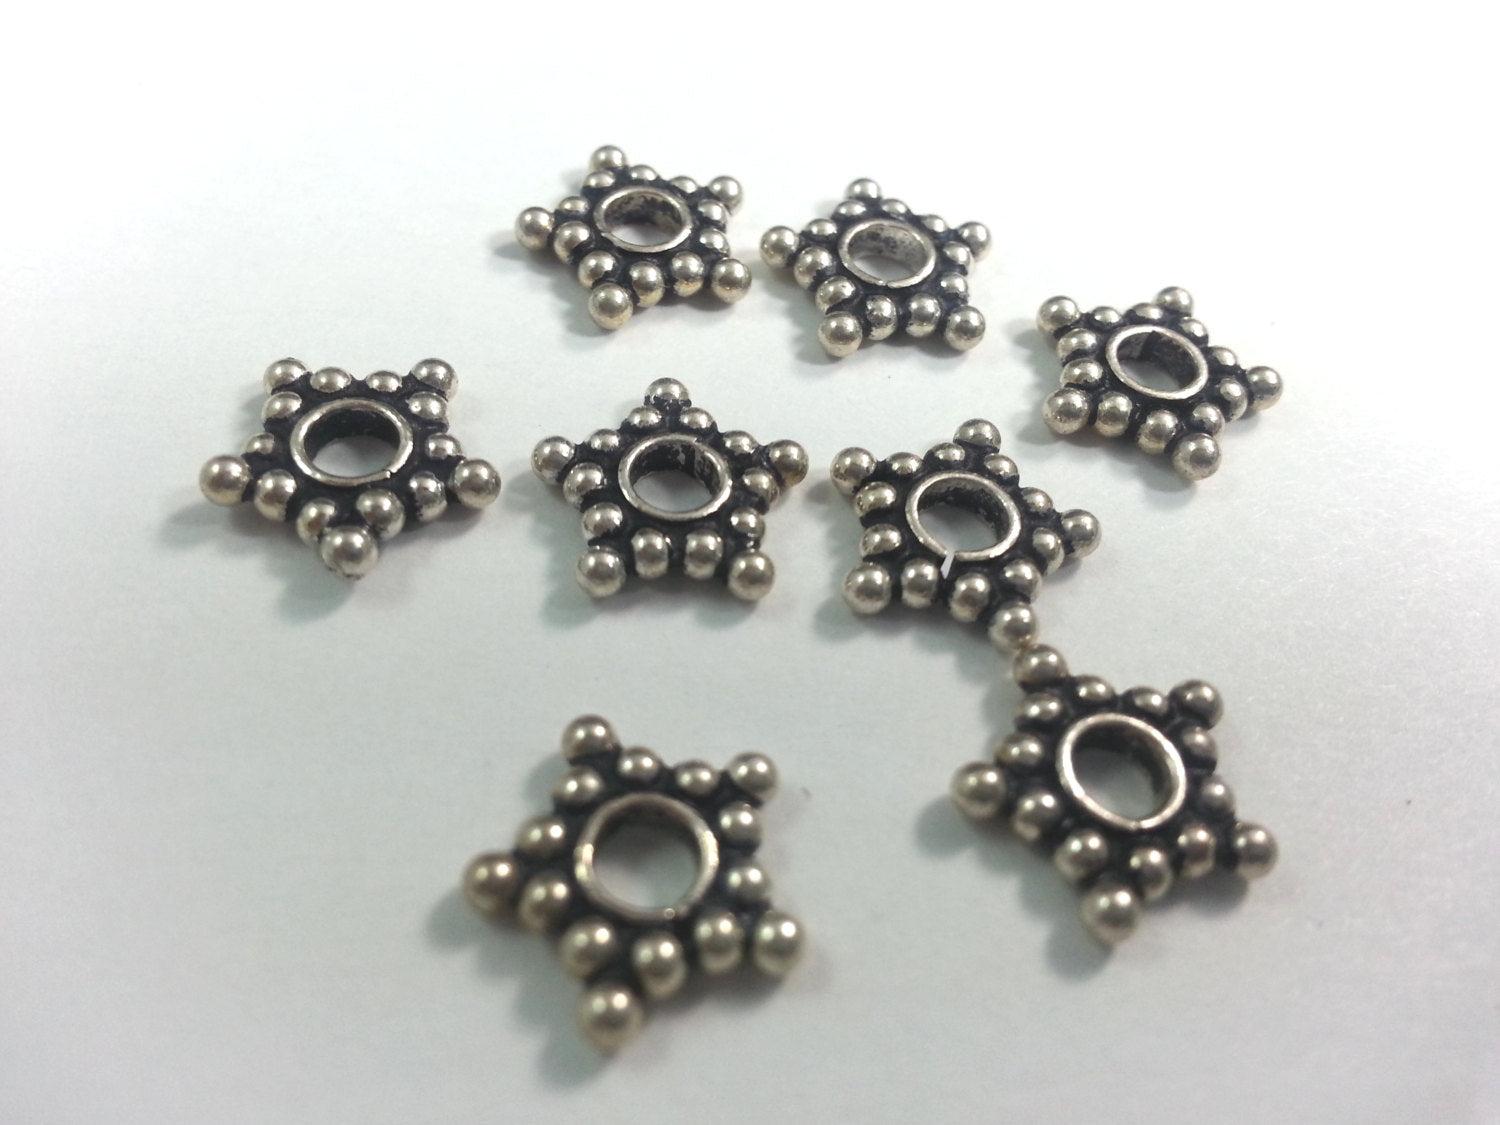 10mm Sterling Silver Star Spacers, Bag of 20